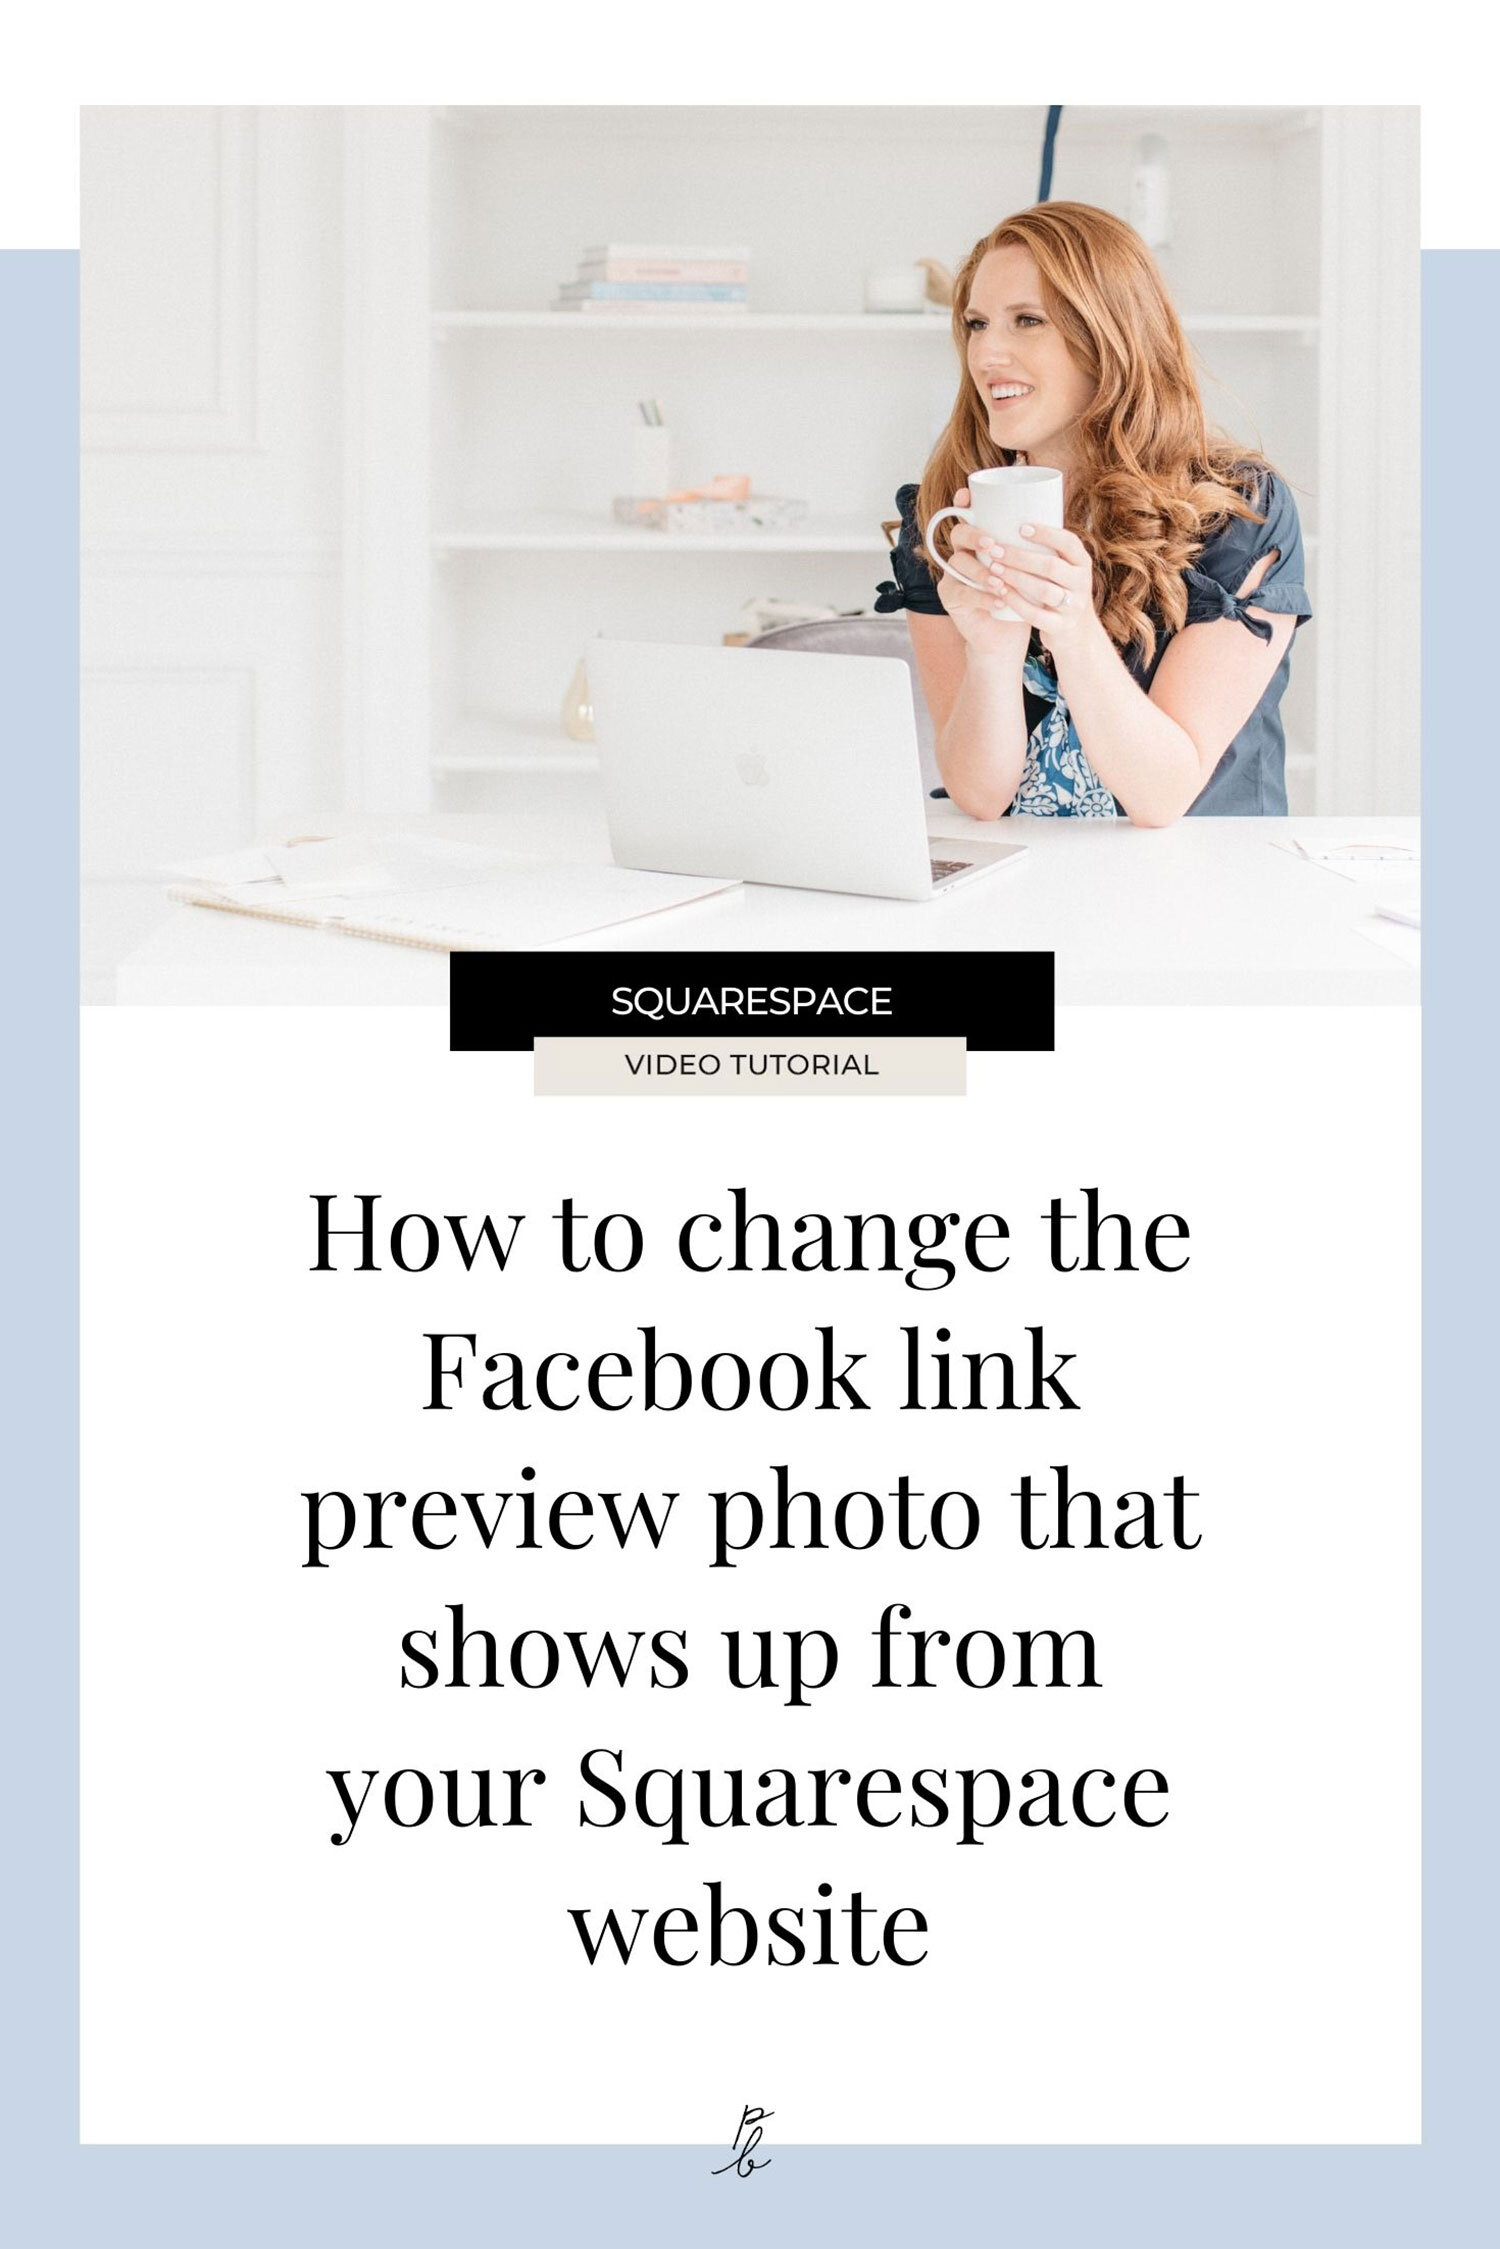 How to change the Facebook link preview photo that shows up from